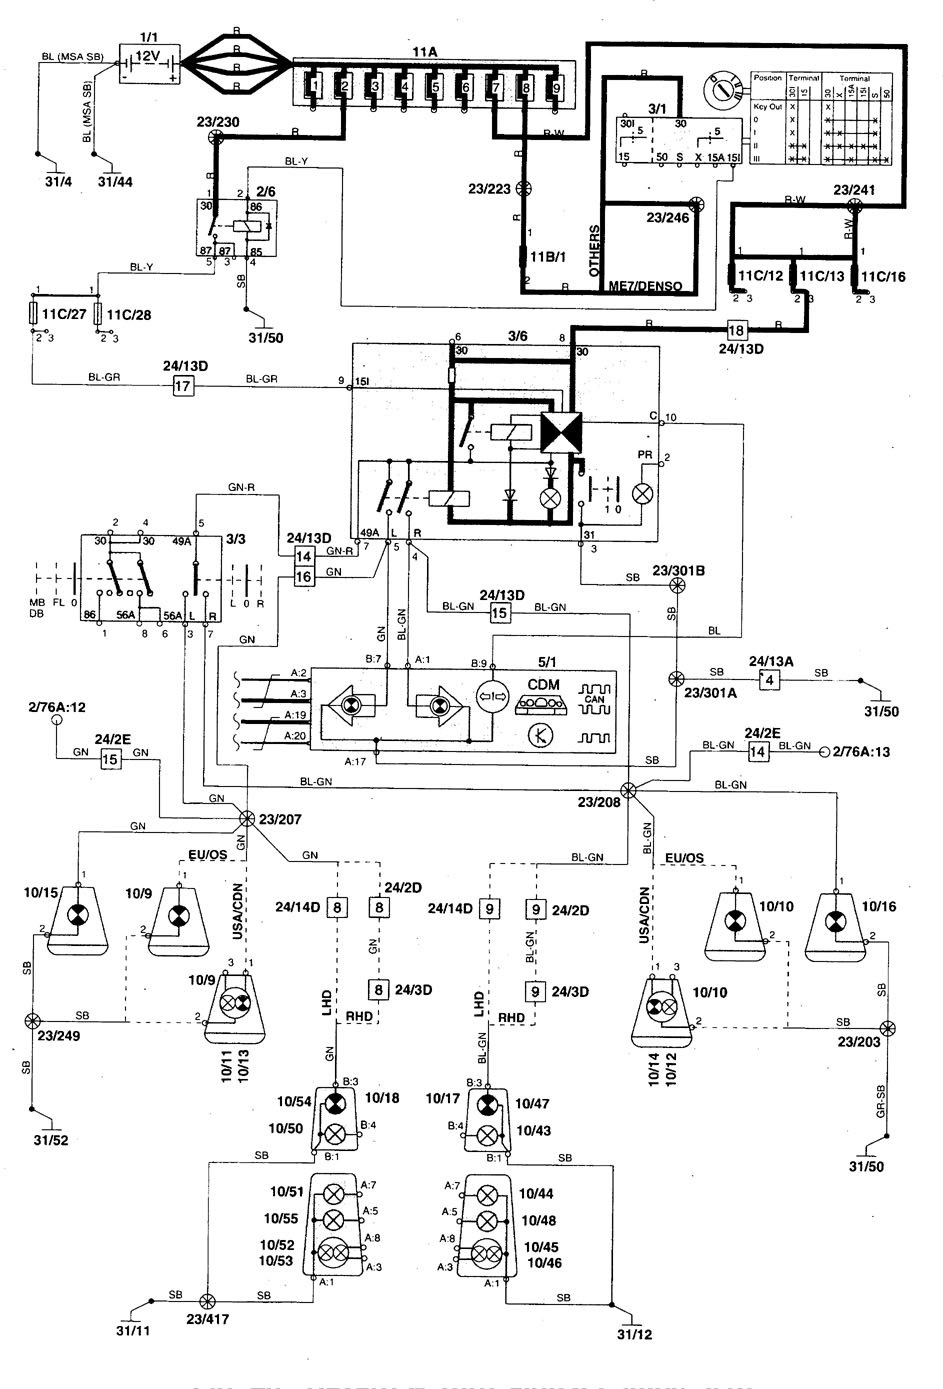 Wiring Diagram Volvo V70 1998 Reveolution Of 850 Electrical Simple Guide About U2022 Rh Bluecrm Co